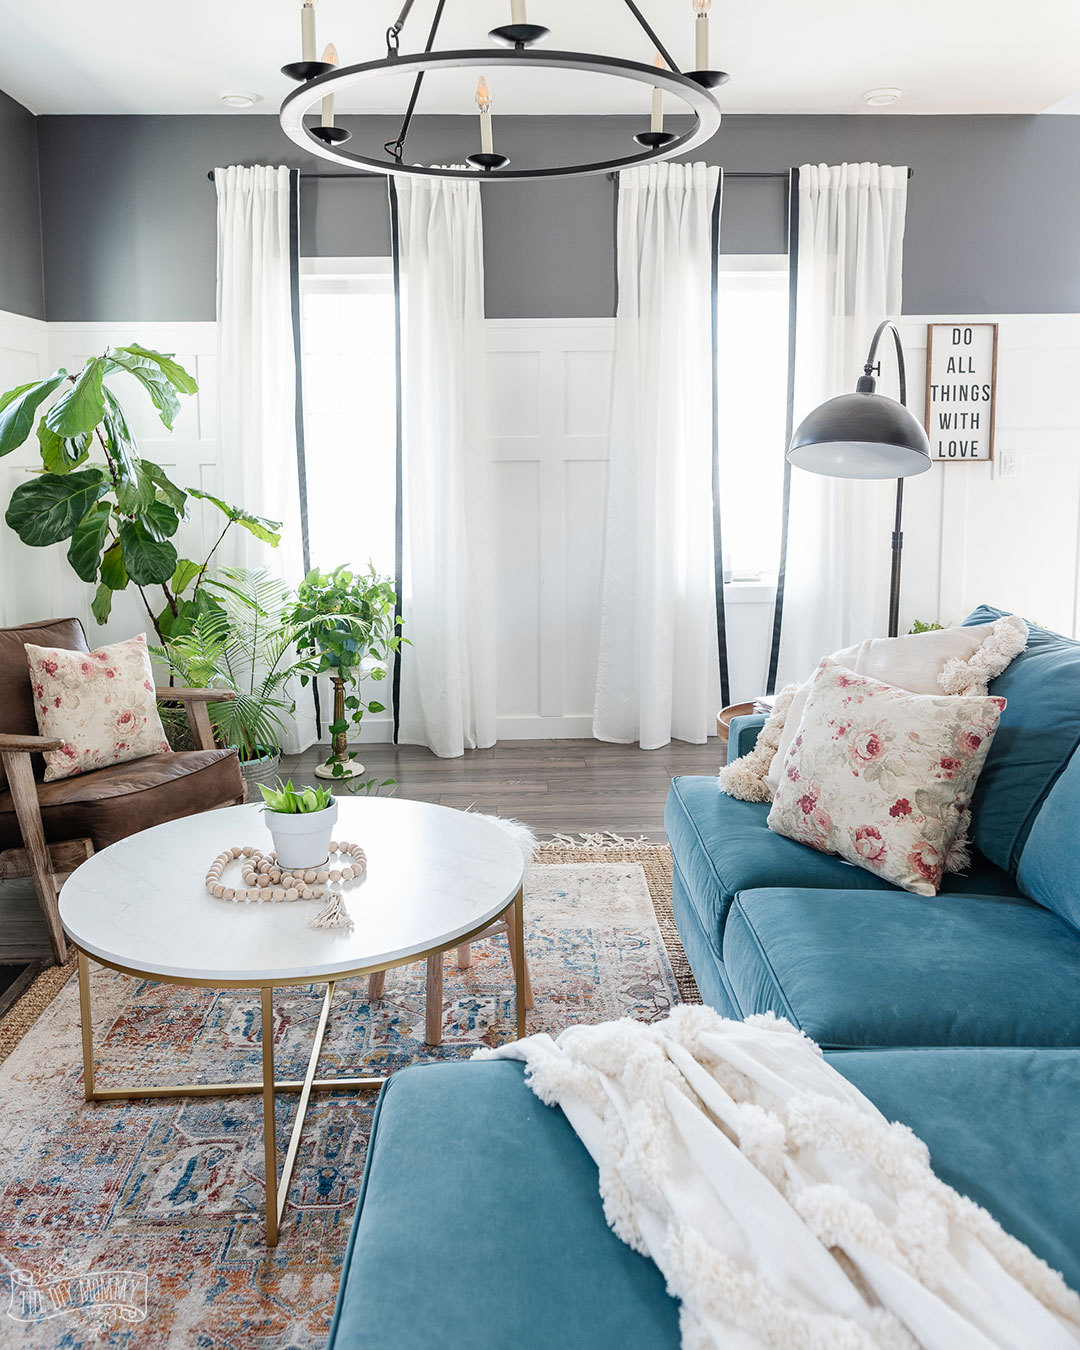 Easy Spring decor ideas for your living room that are simple and budget friendly.